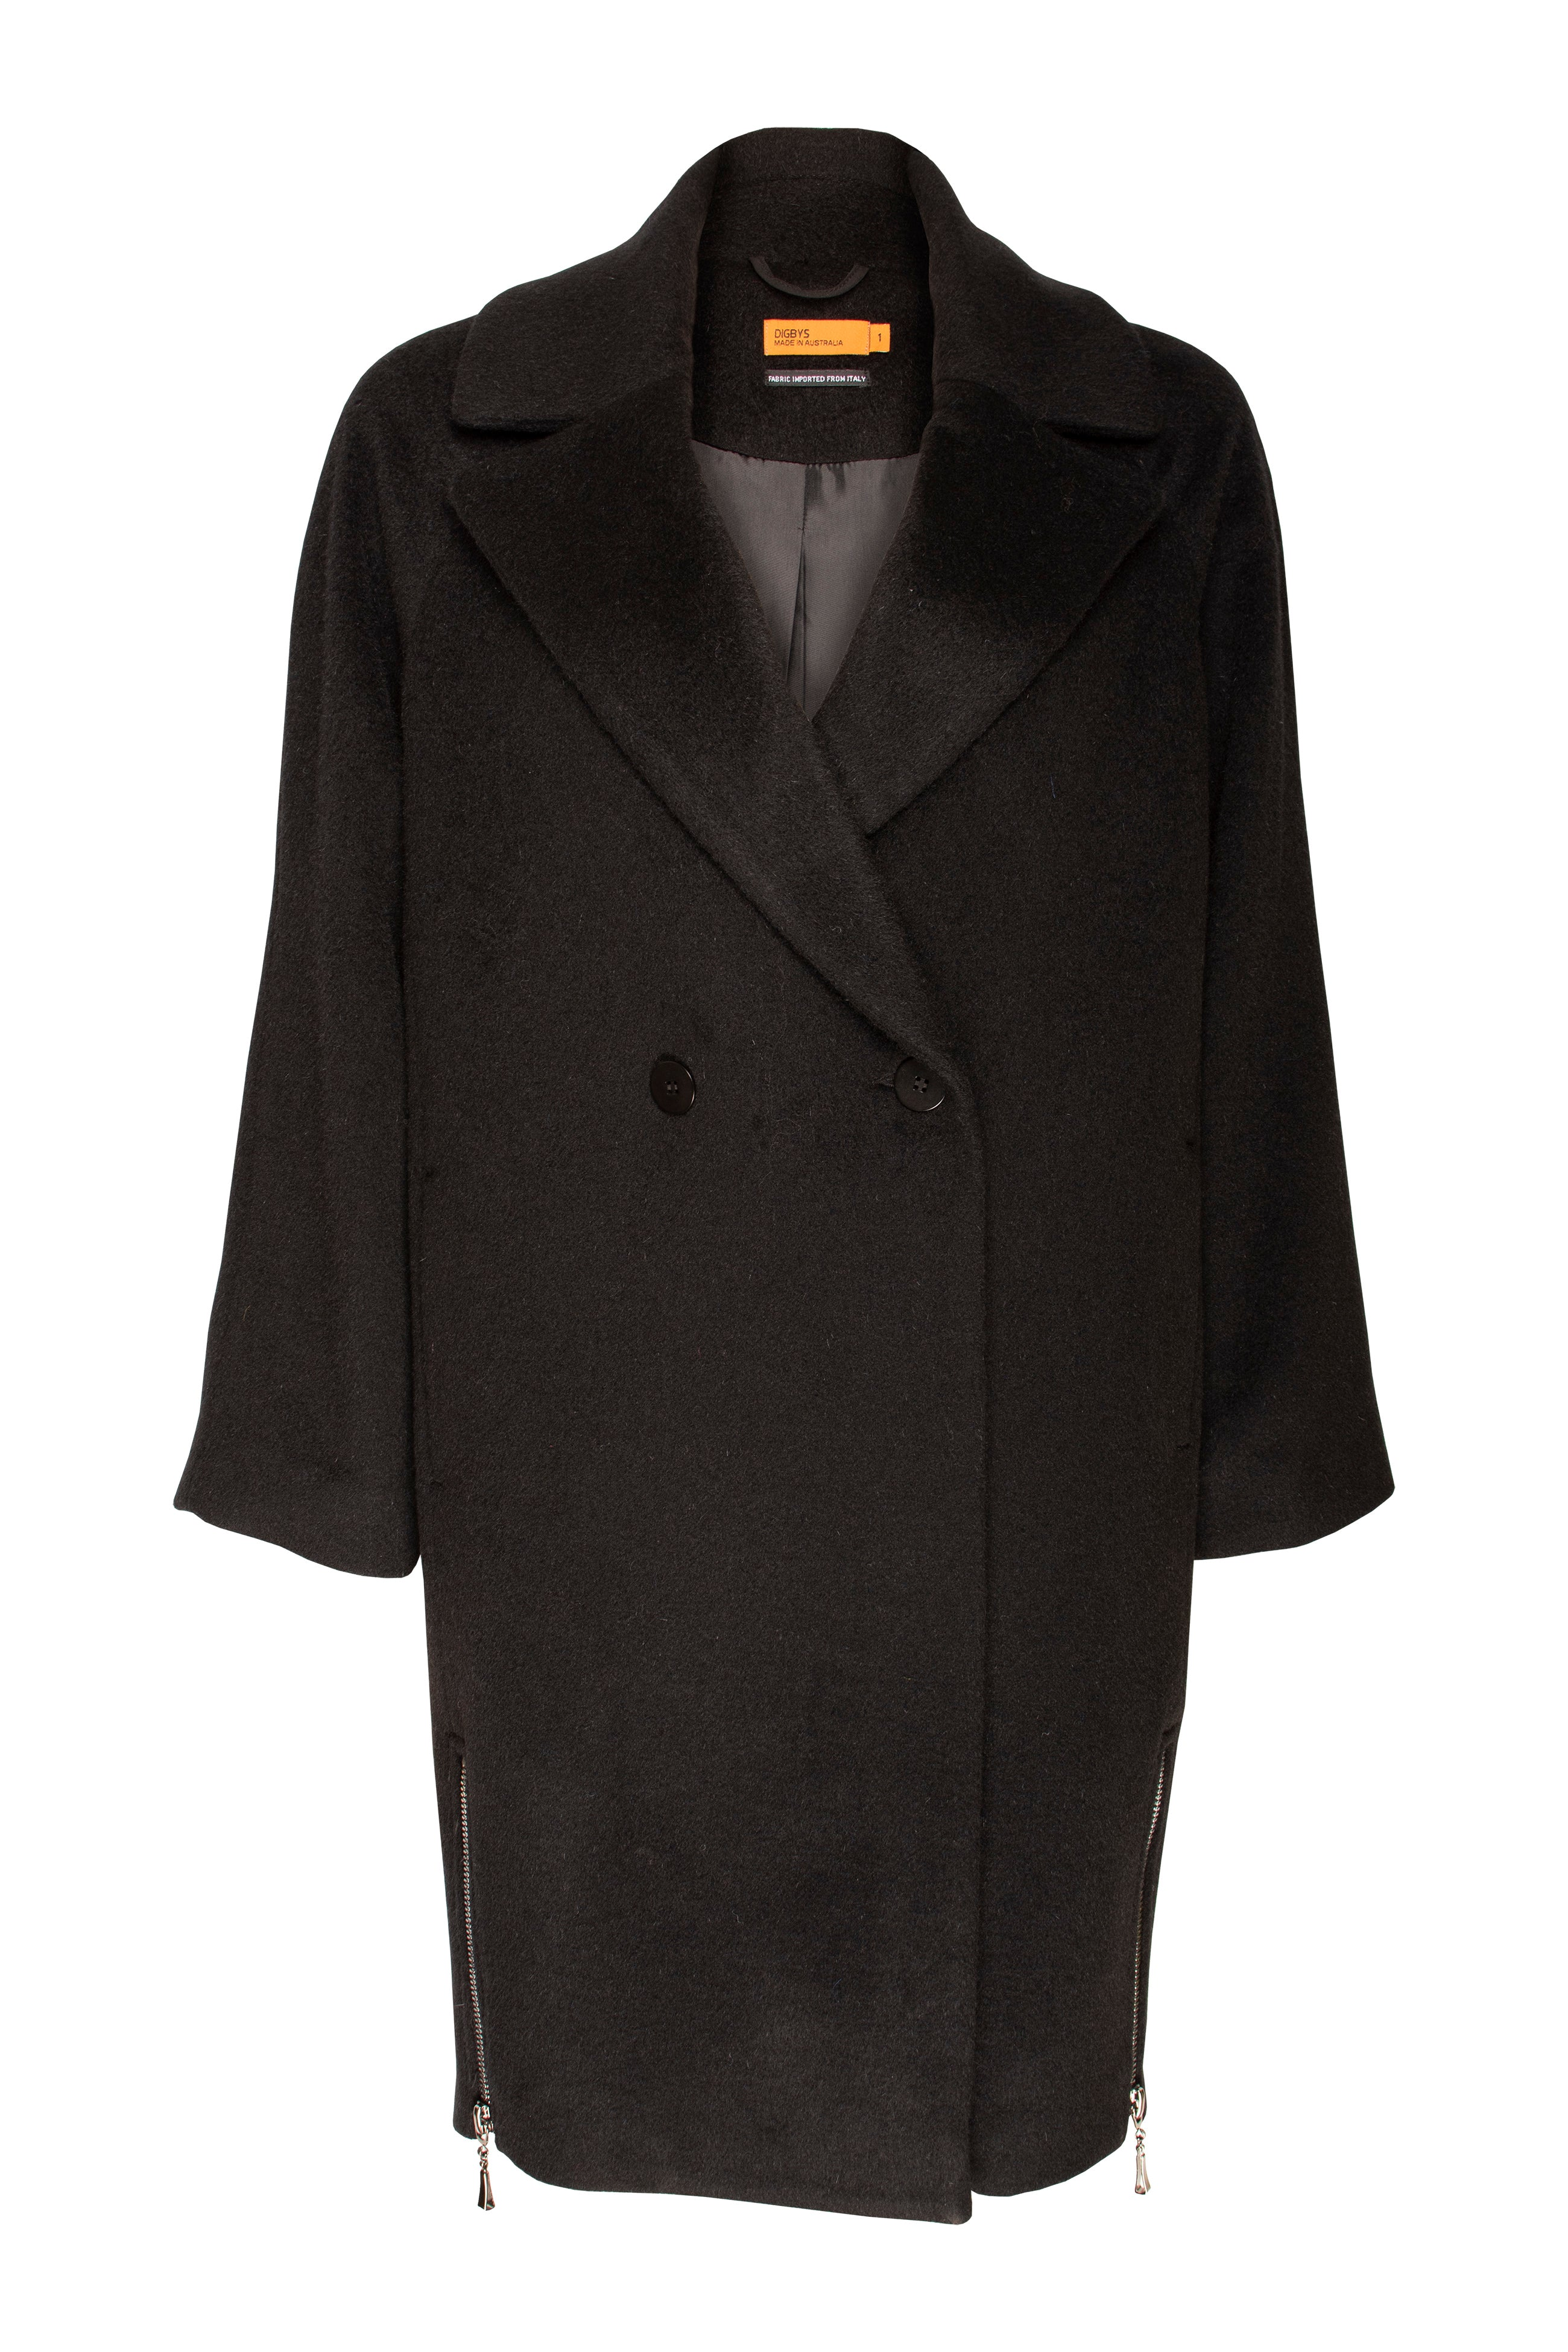 Black Italian Wool blend coat with a cocoon shape, side zips and raglan sleeves, made in Australia